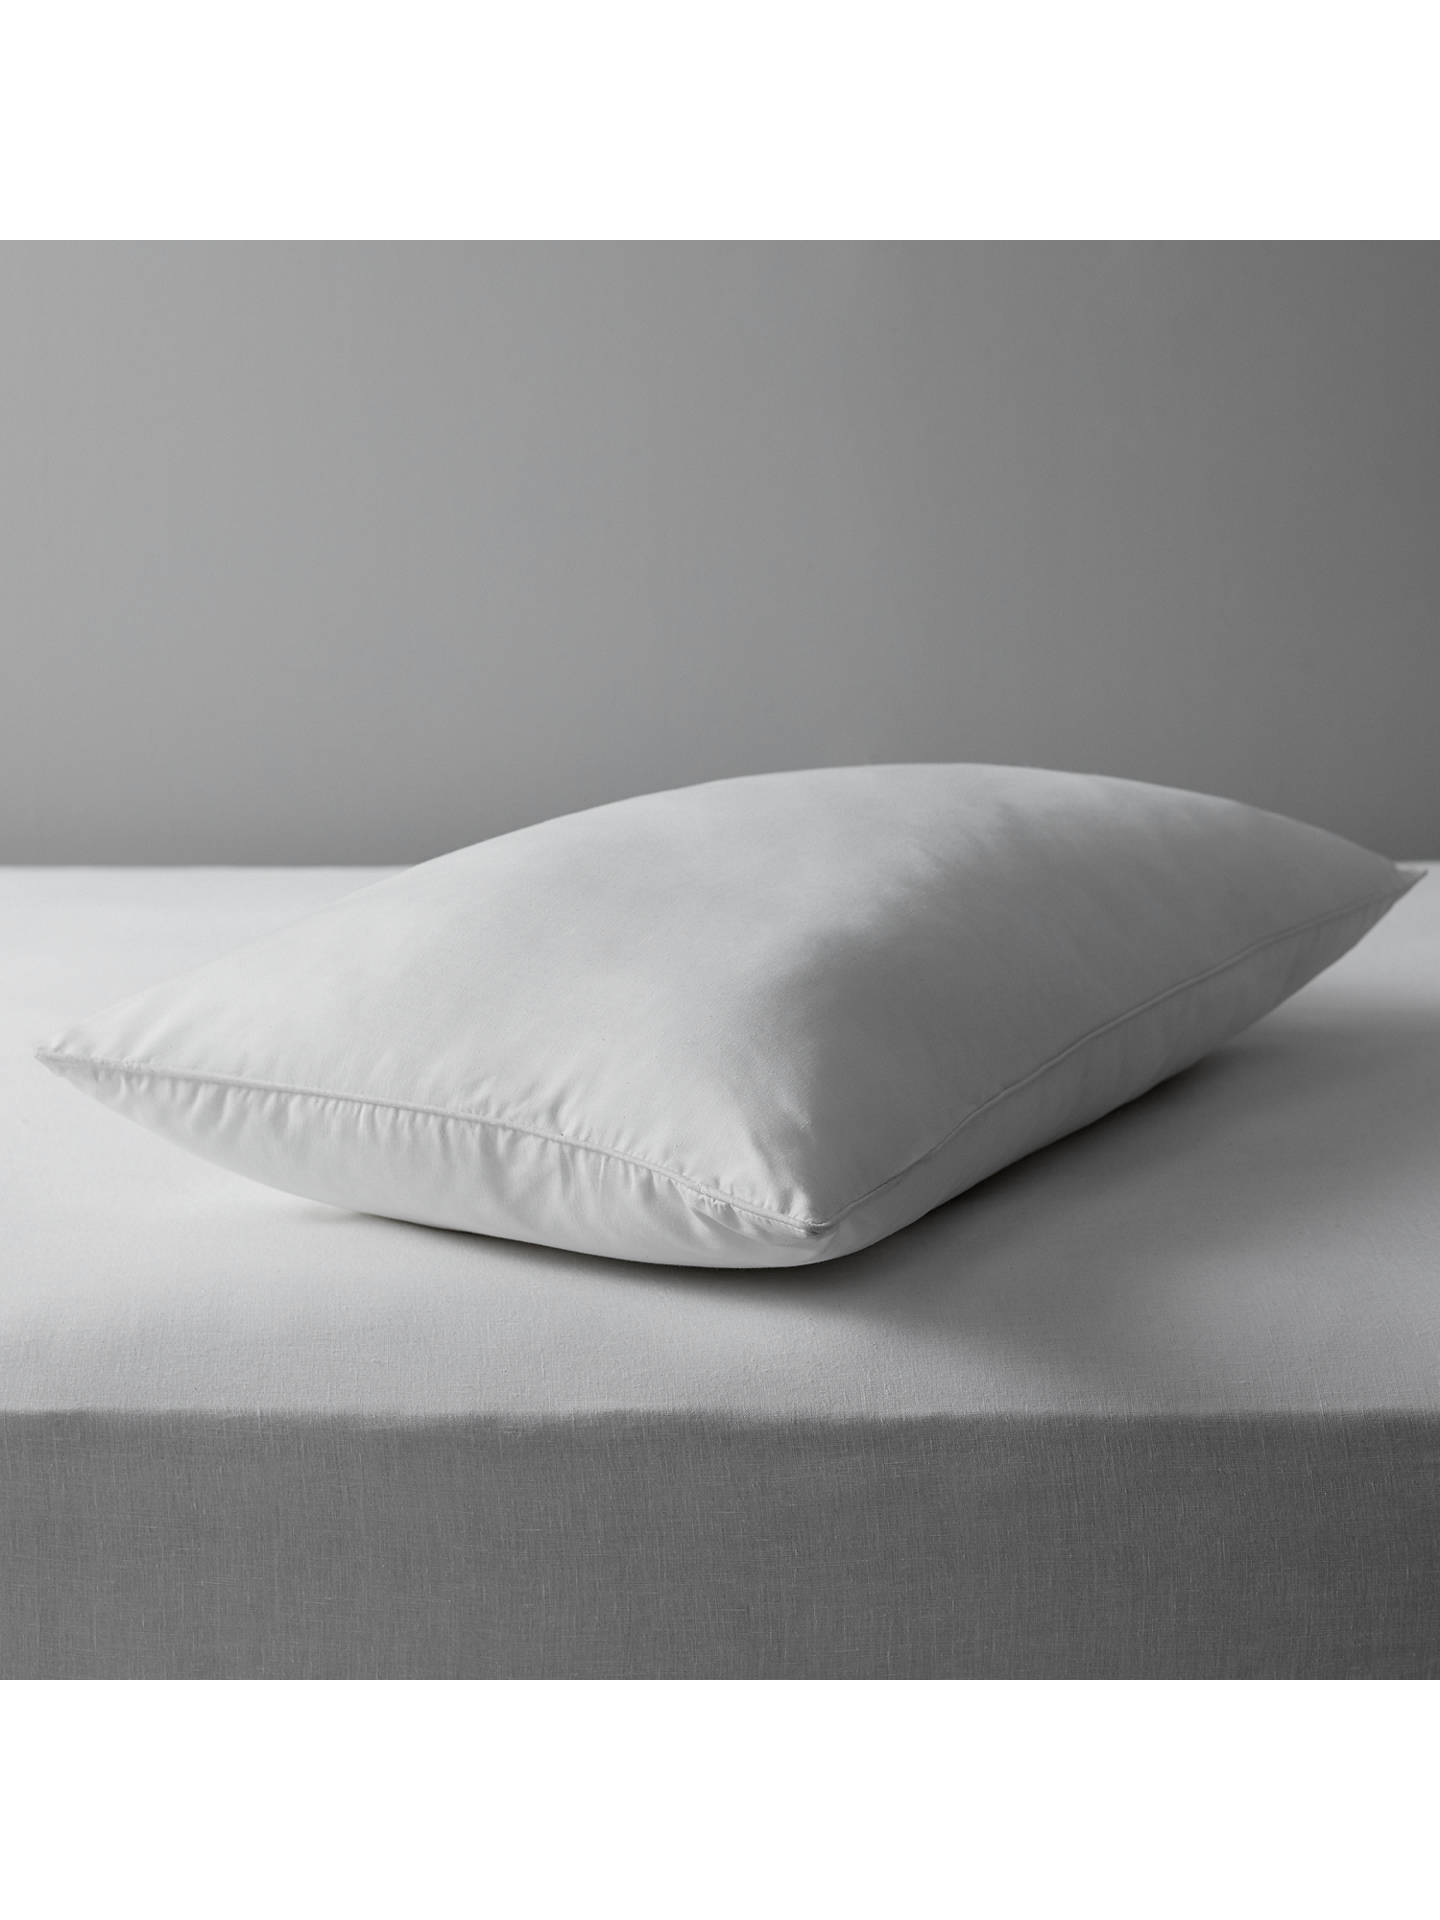 BuyJohn Lewis Specialist Synthetic Carefree Comfort Teflon Standard Pillow, Soft Online at johnlewis.com